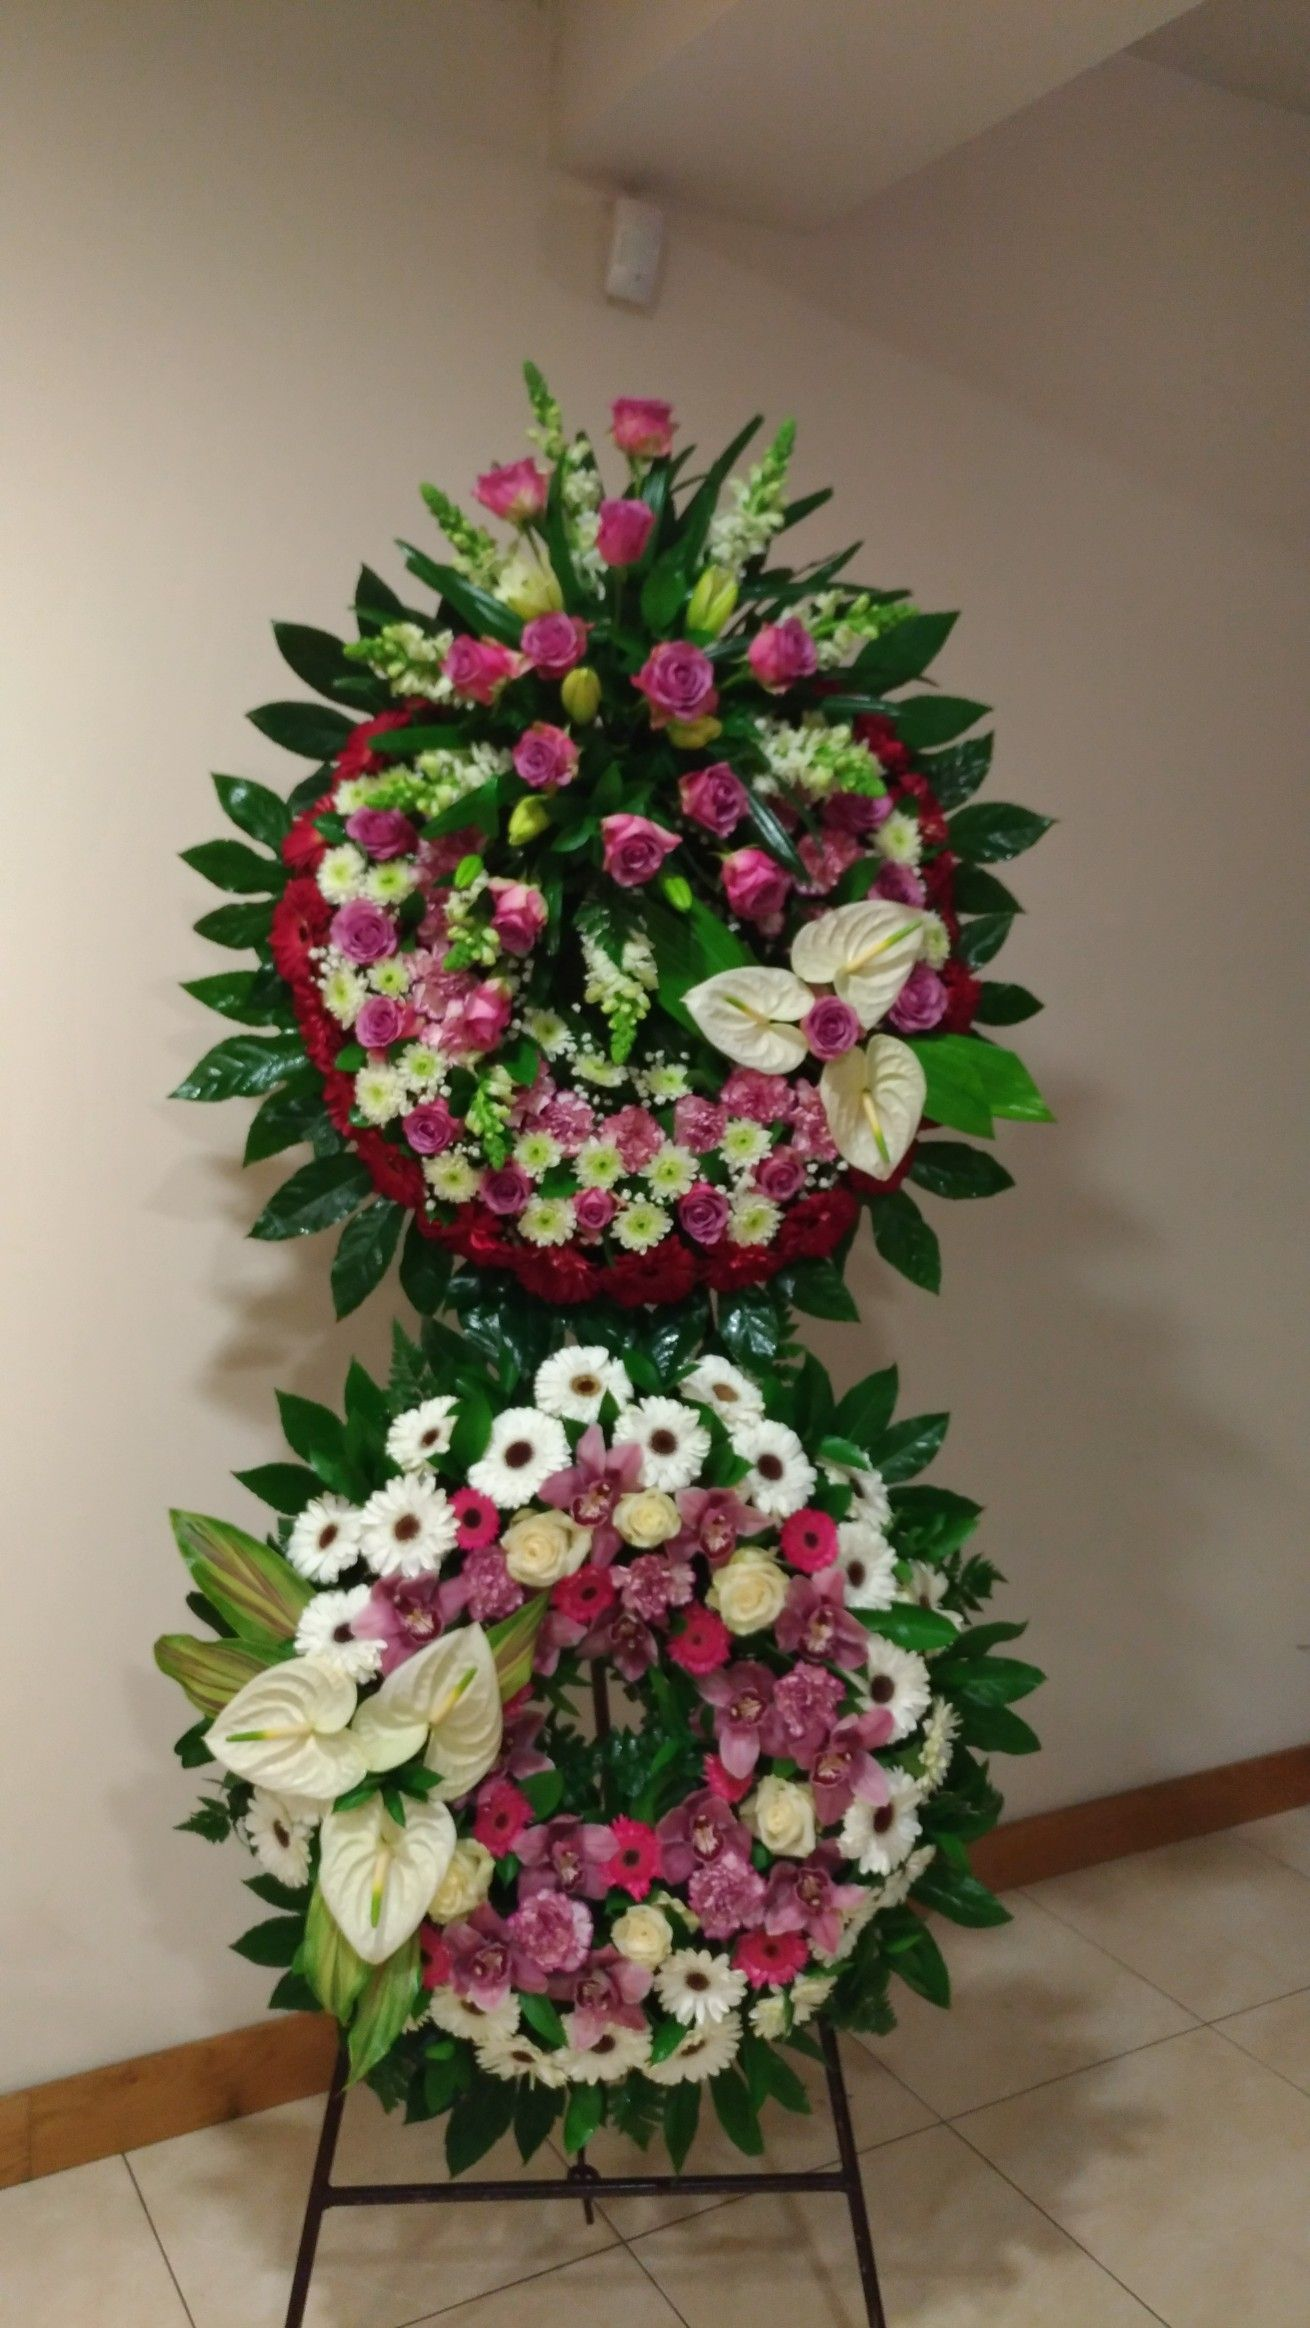 Use For Photo Wreaths Photo Crafts Pinterest Funeral Funeral